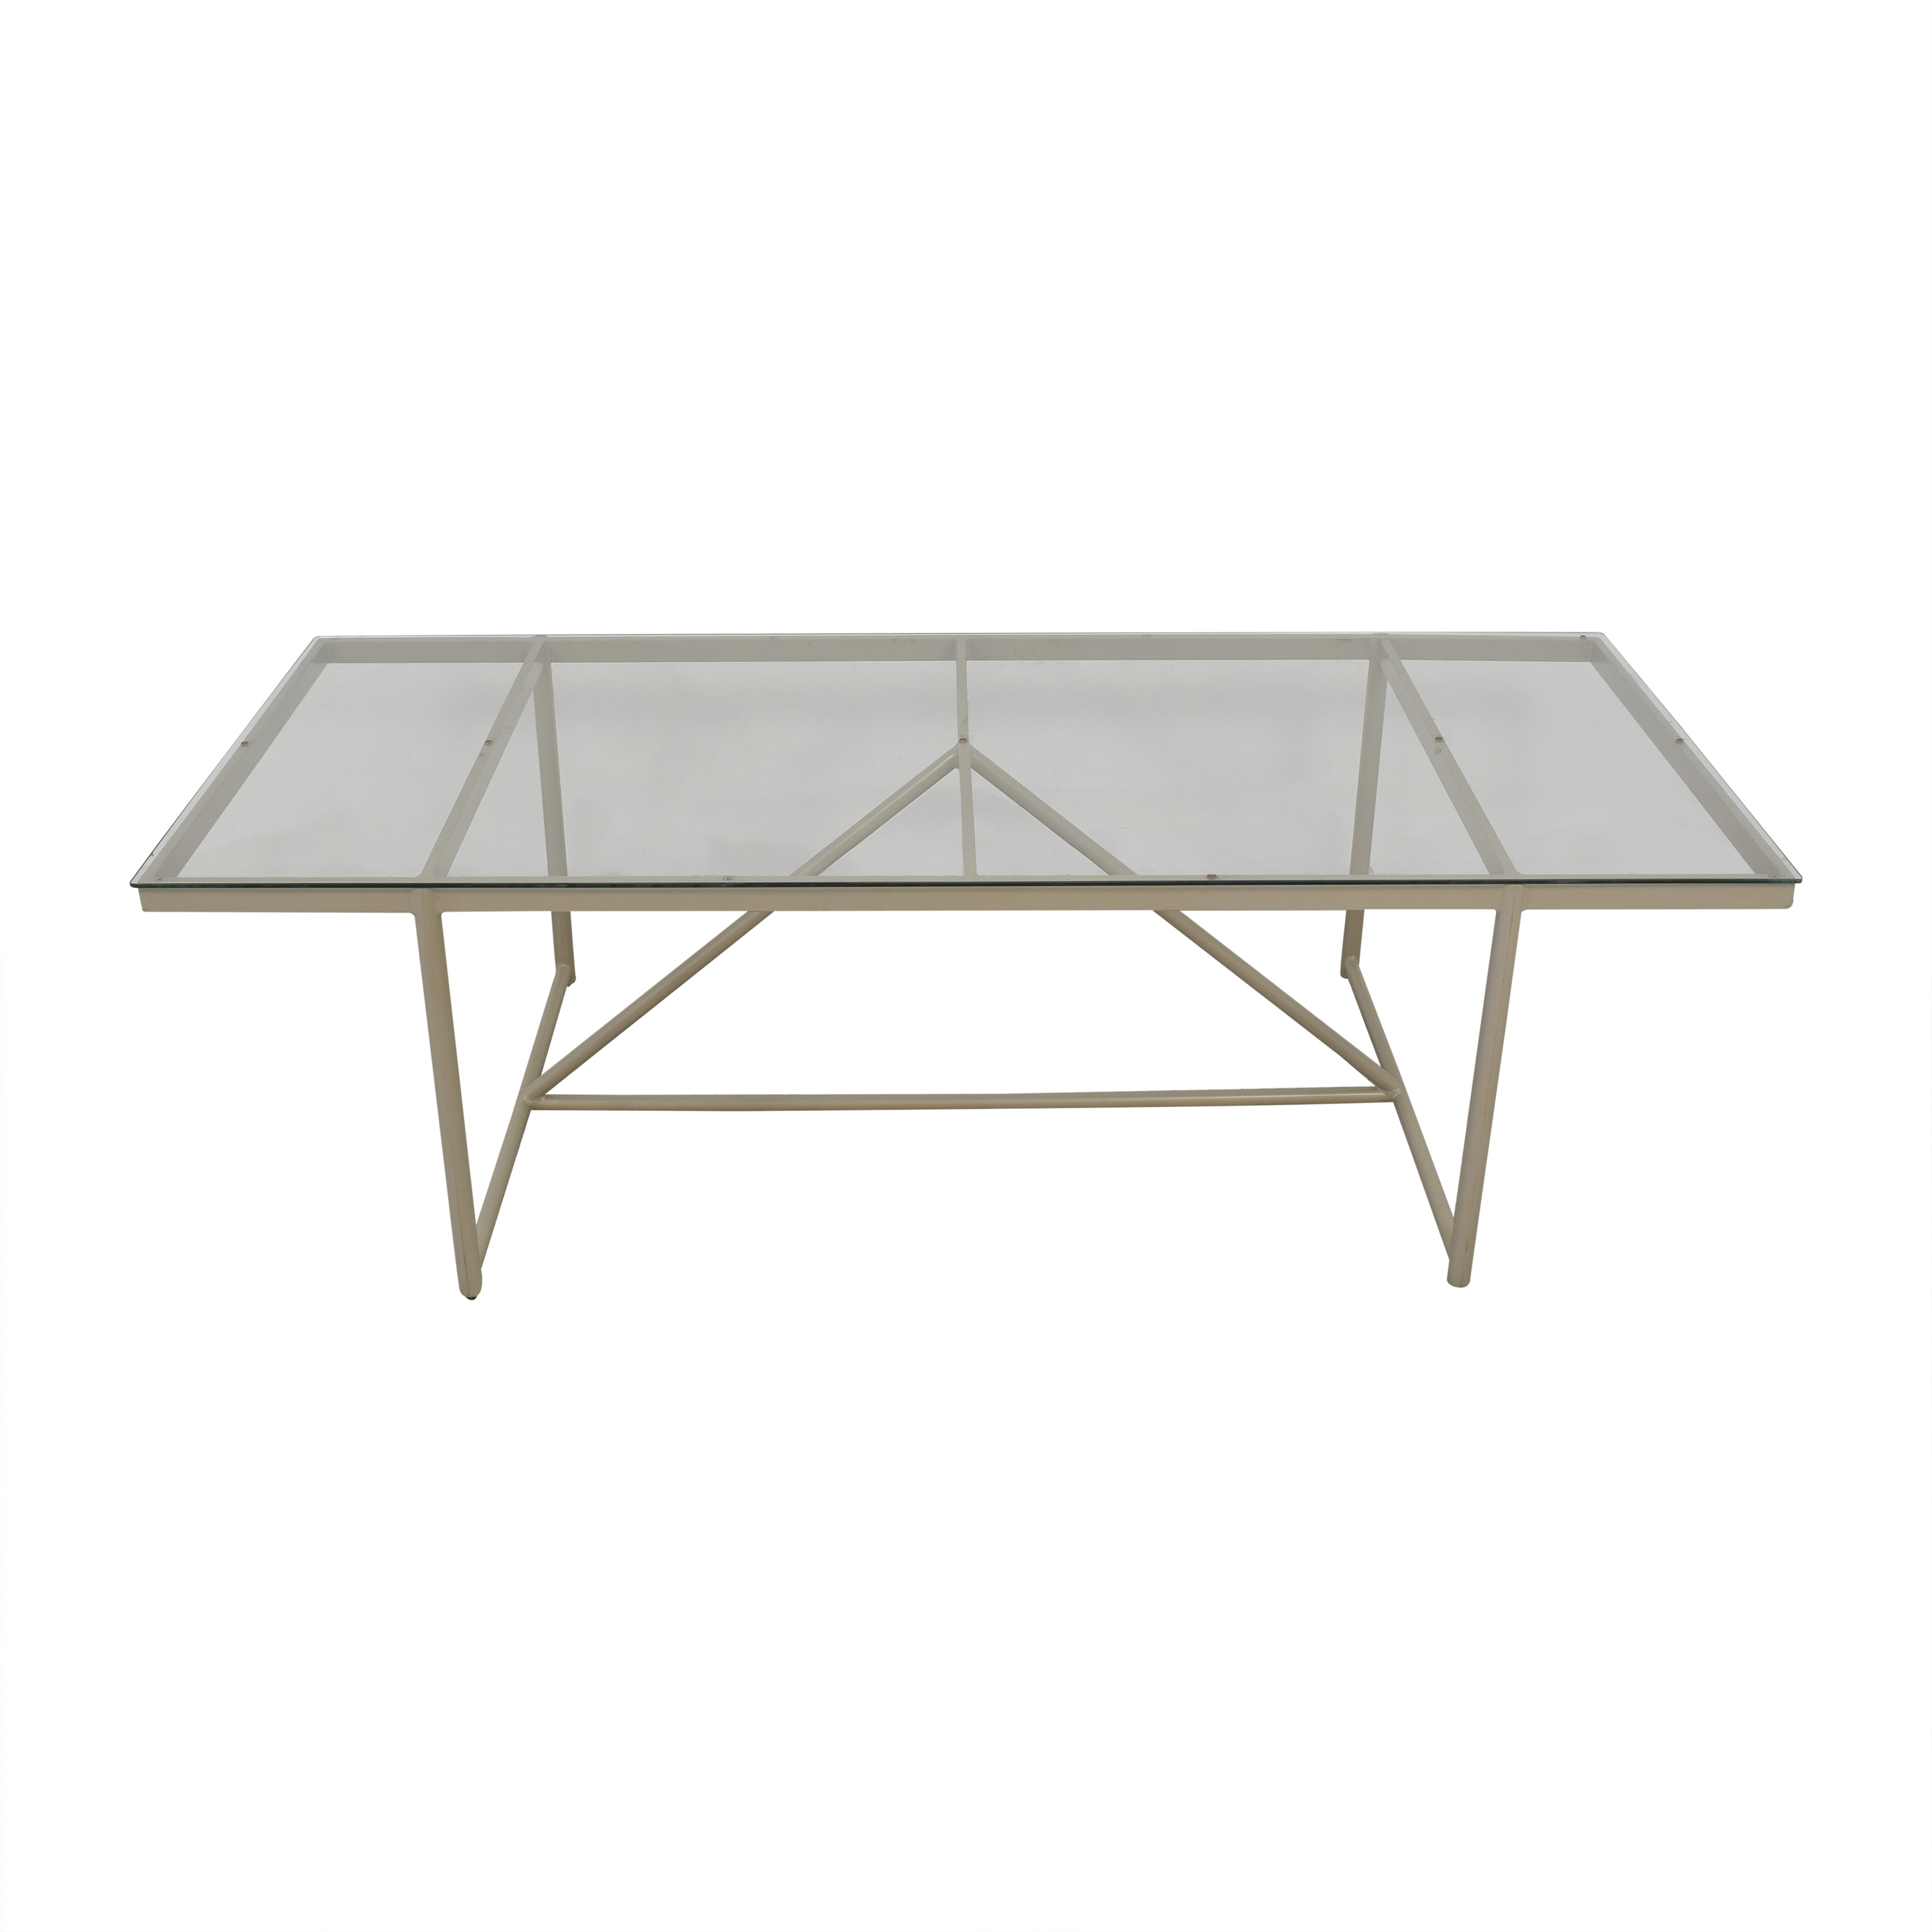 Frontgate Frontgate Enzo Rectangular Dining Table Dinner Tables